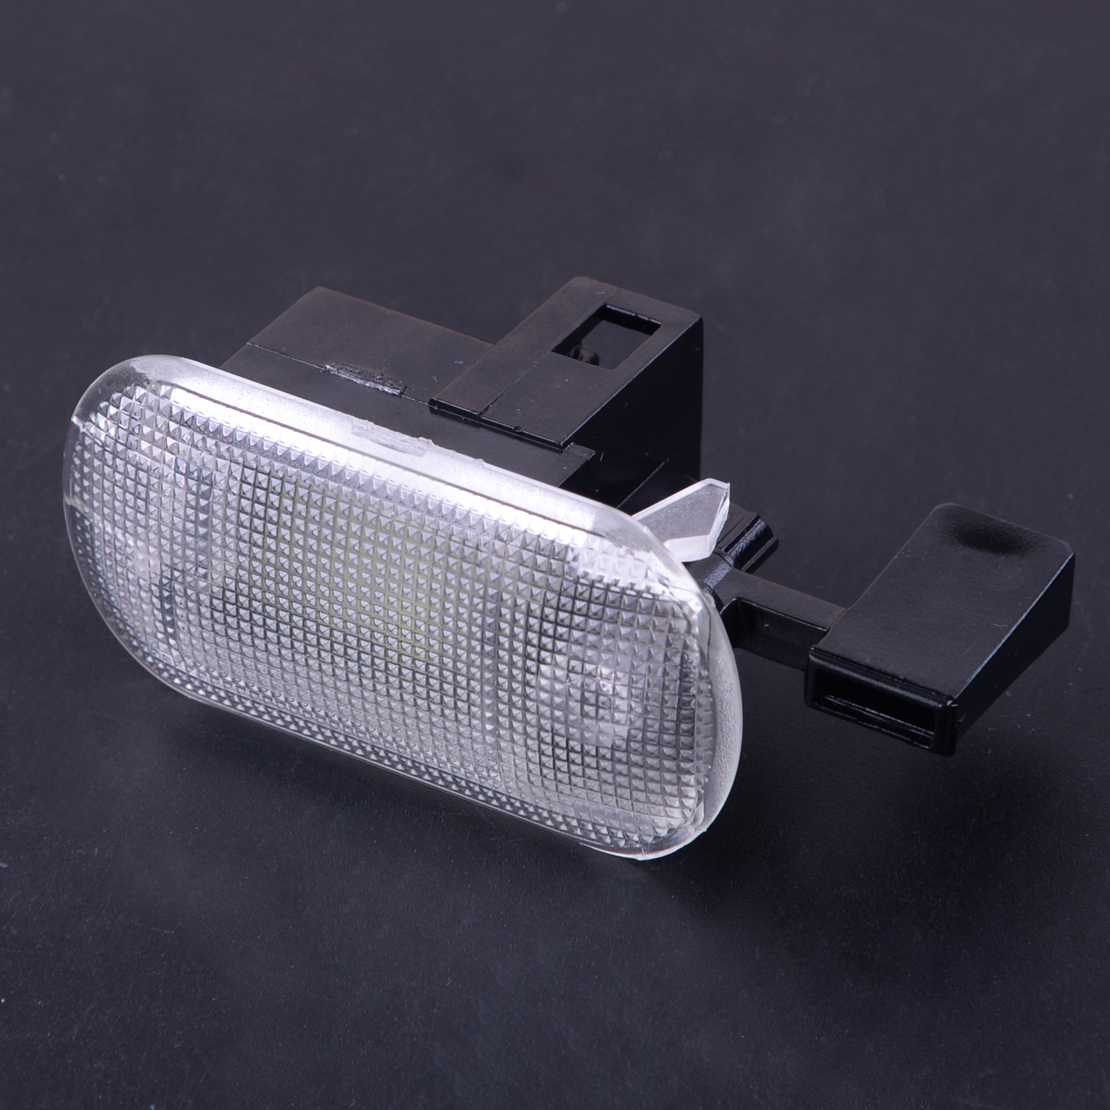 beler 12V LED Glove Box Module Light Fit for Skoda Fabia Octavia Superb Yeti VW Beetle Jetta Golf MK4 Passat Touran Touareg image